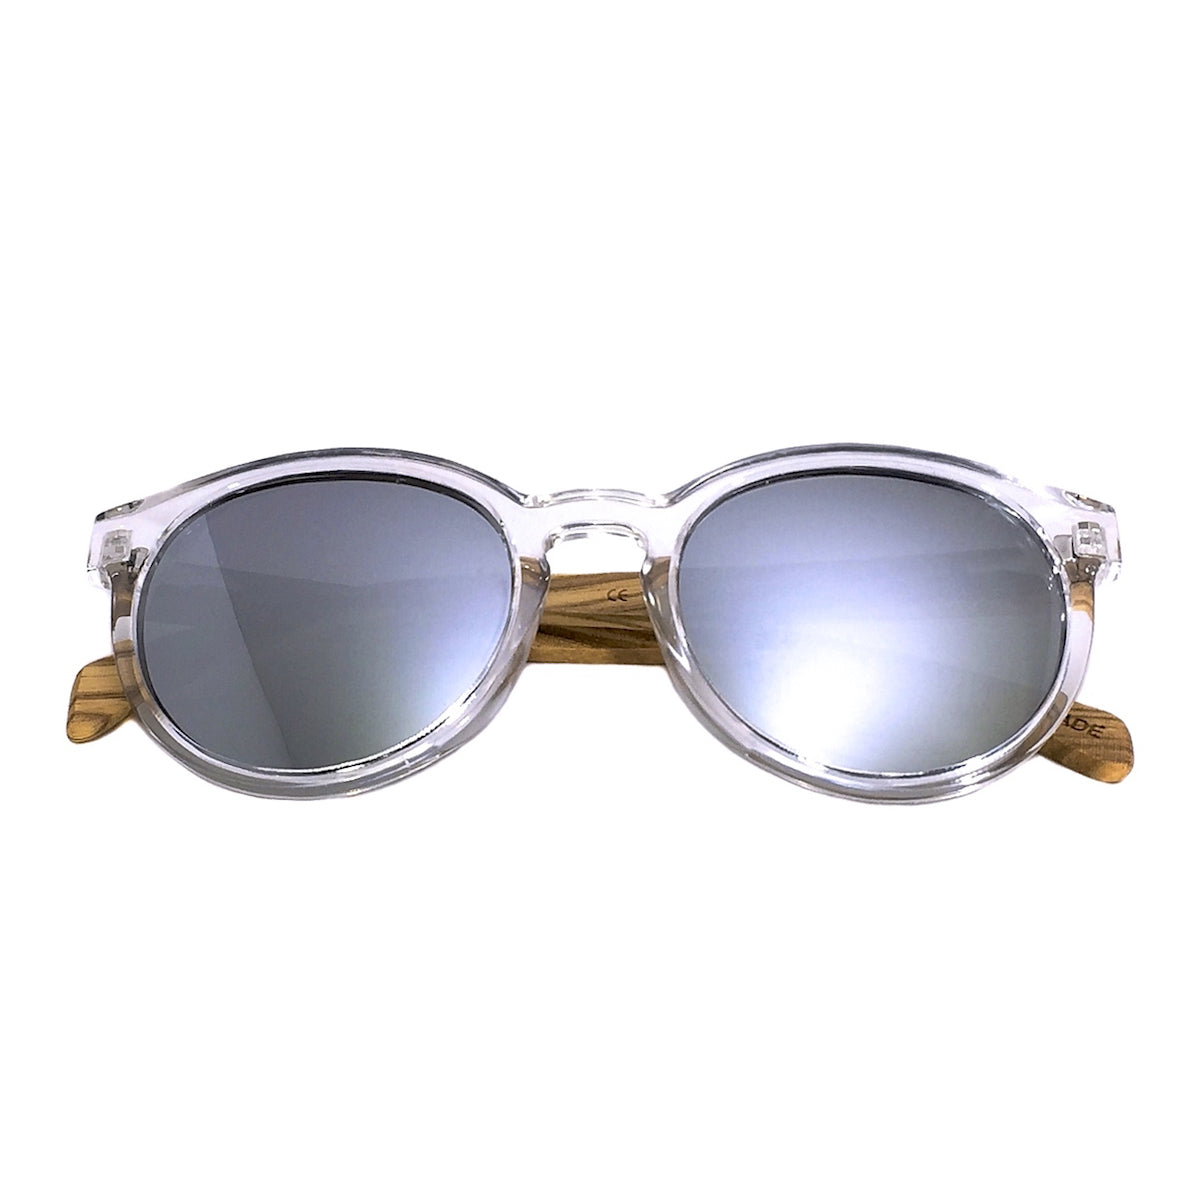 f1777989efc0 Clear Frame Polarized Mirror Sunglasses with Contrasting Wood ...